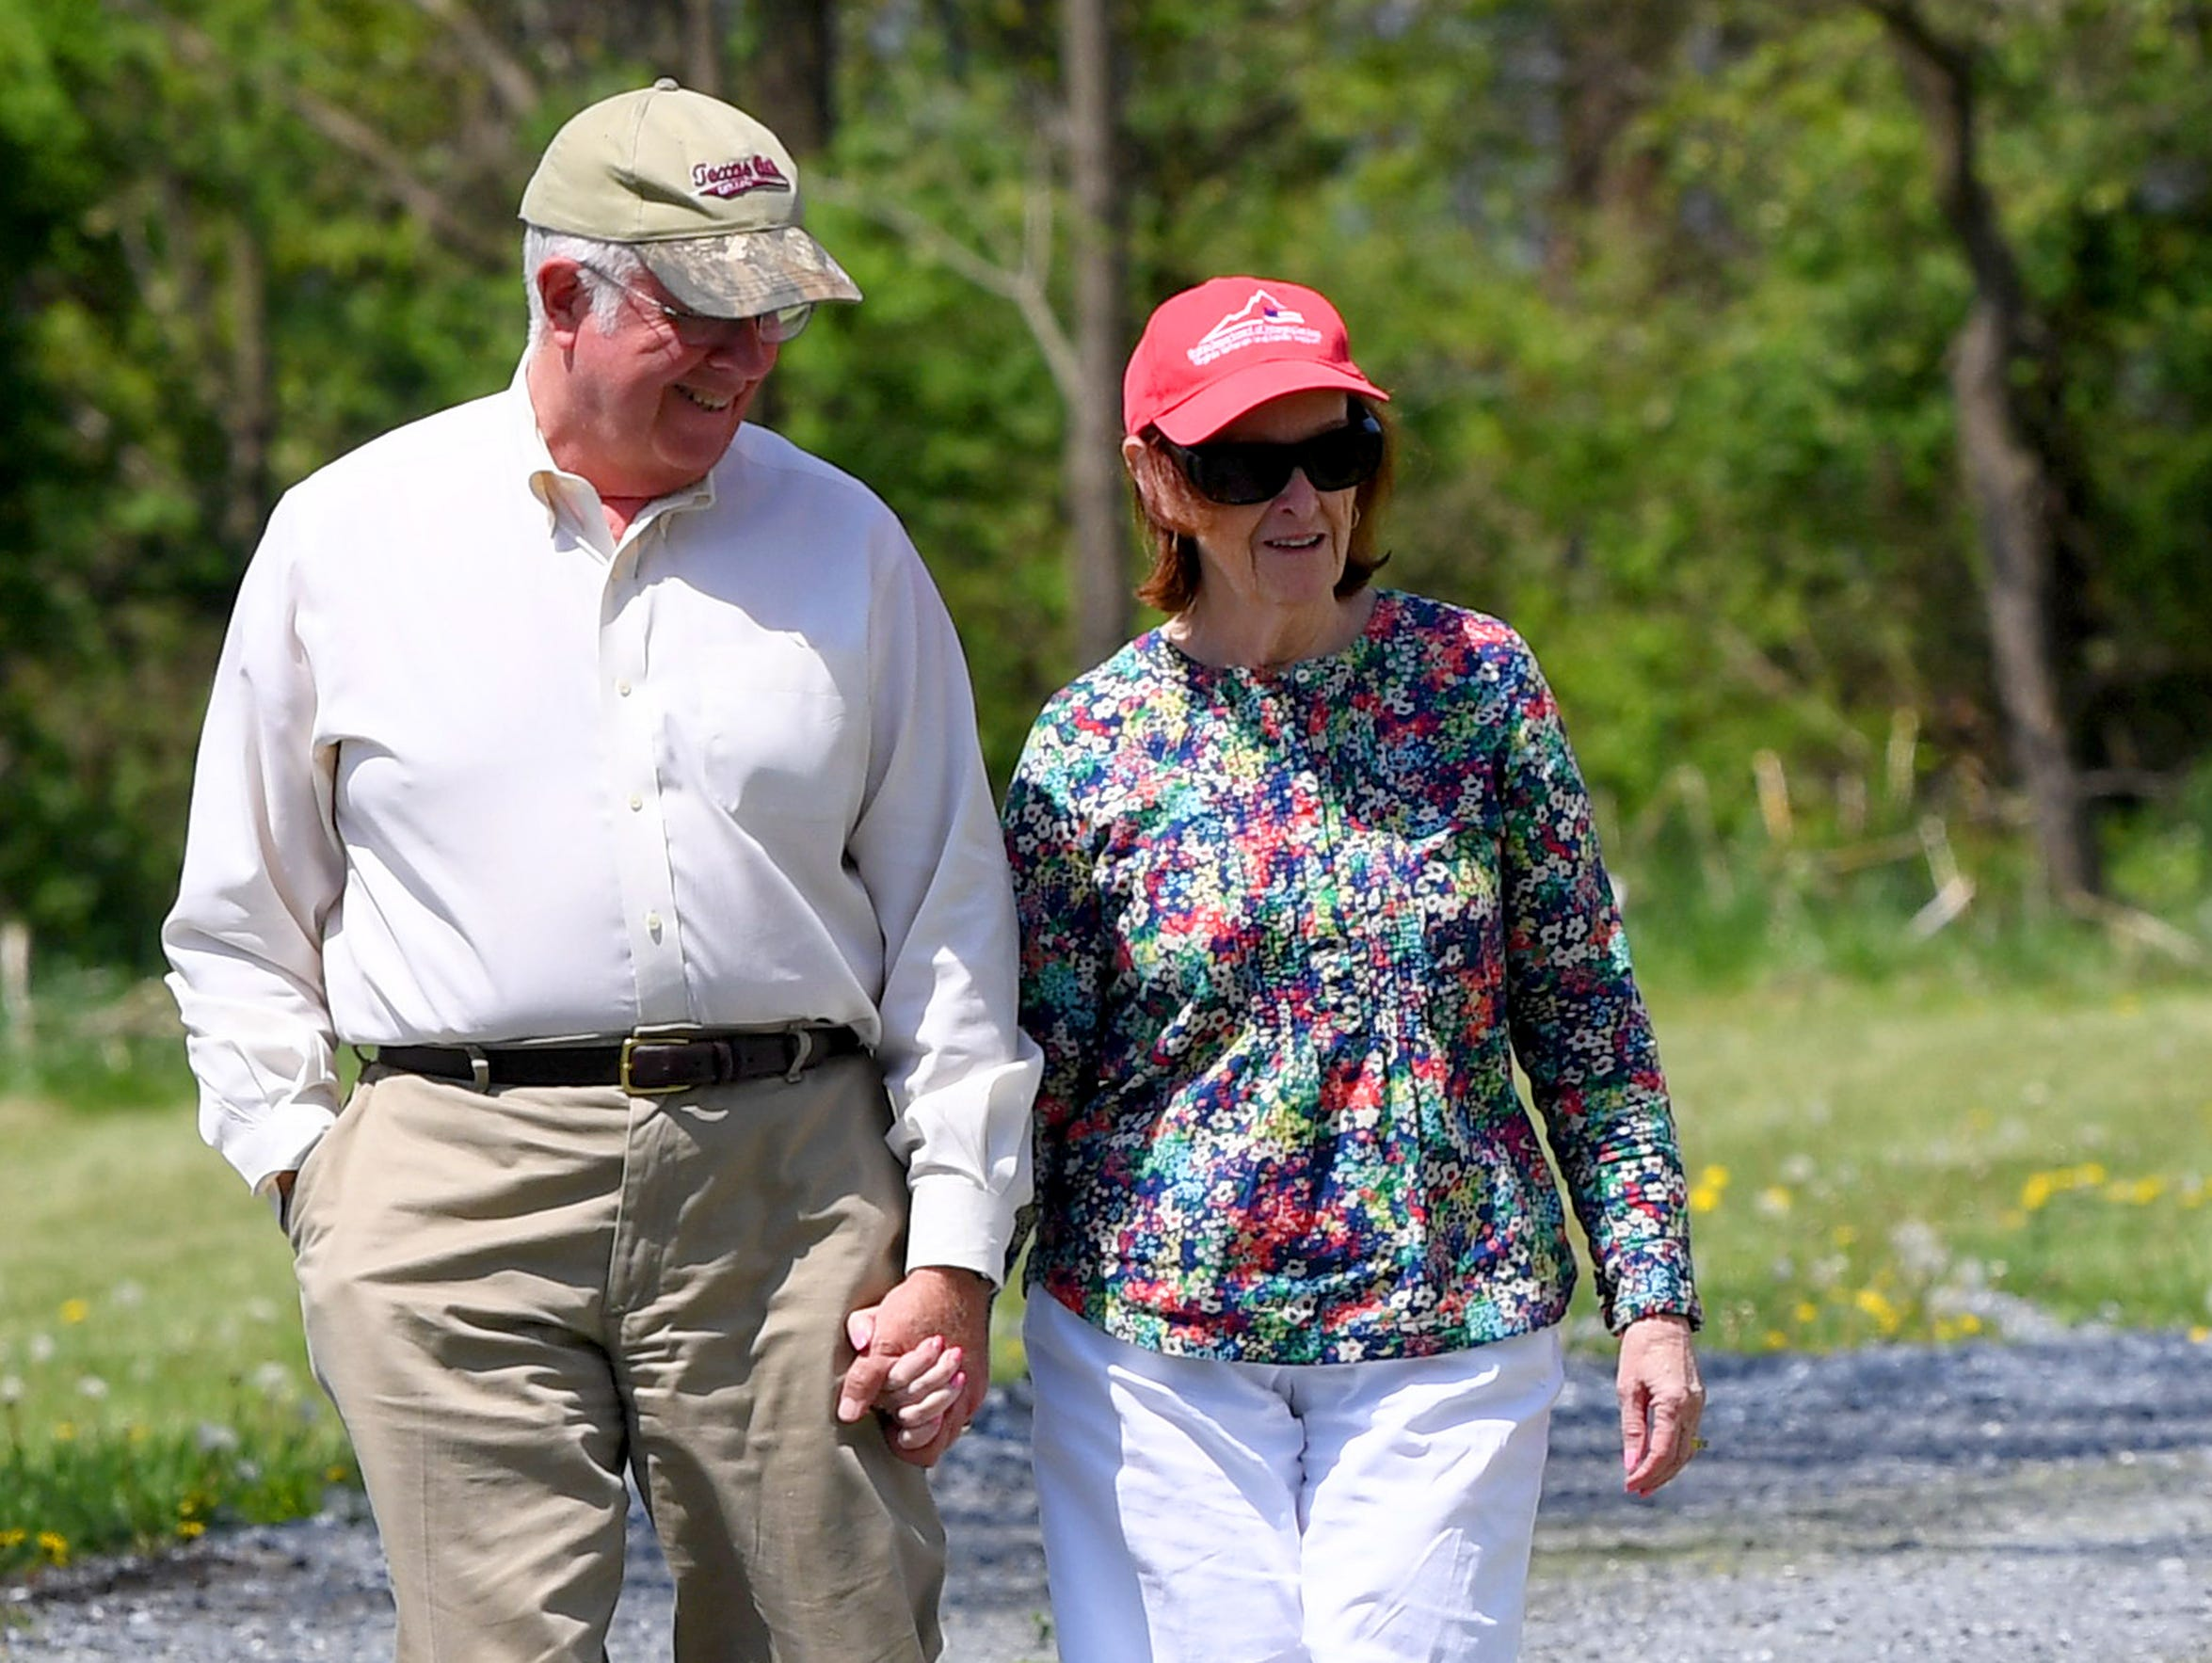 Patrick and Carol Webb hold hands as they walk together